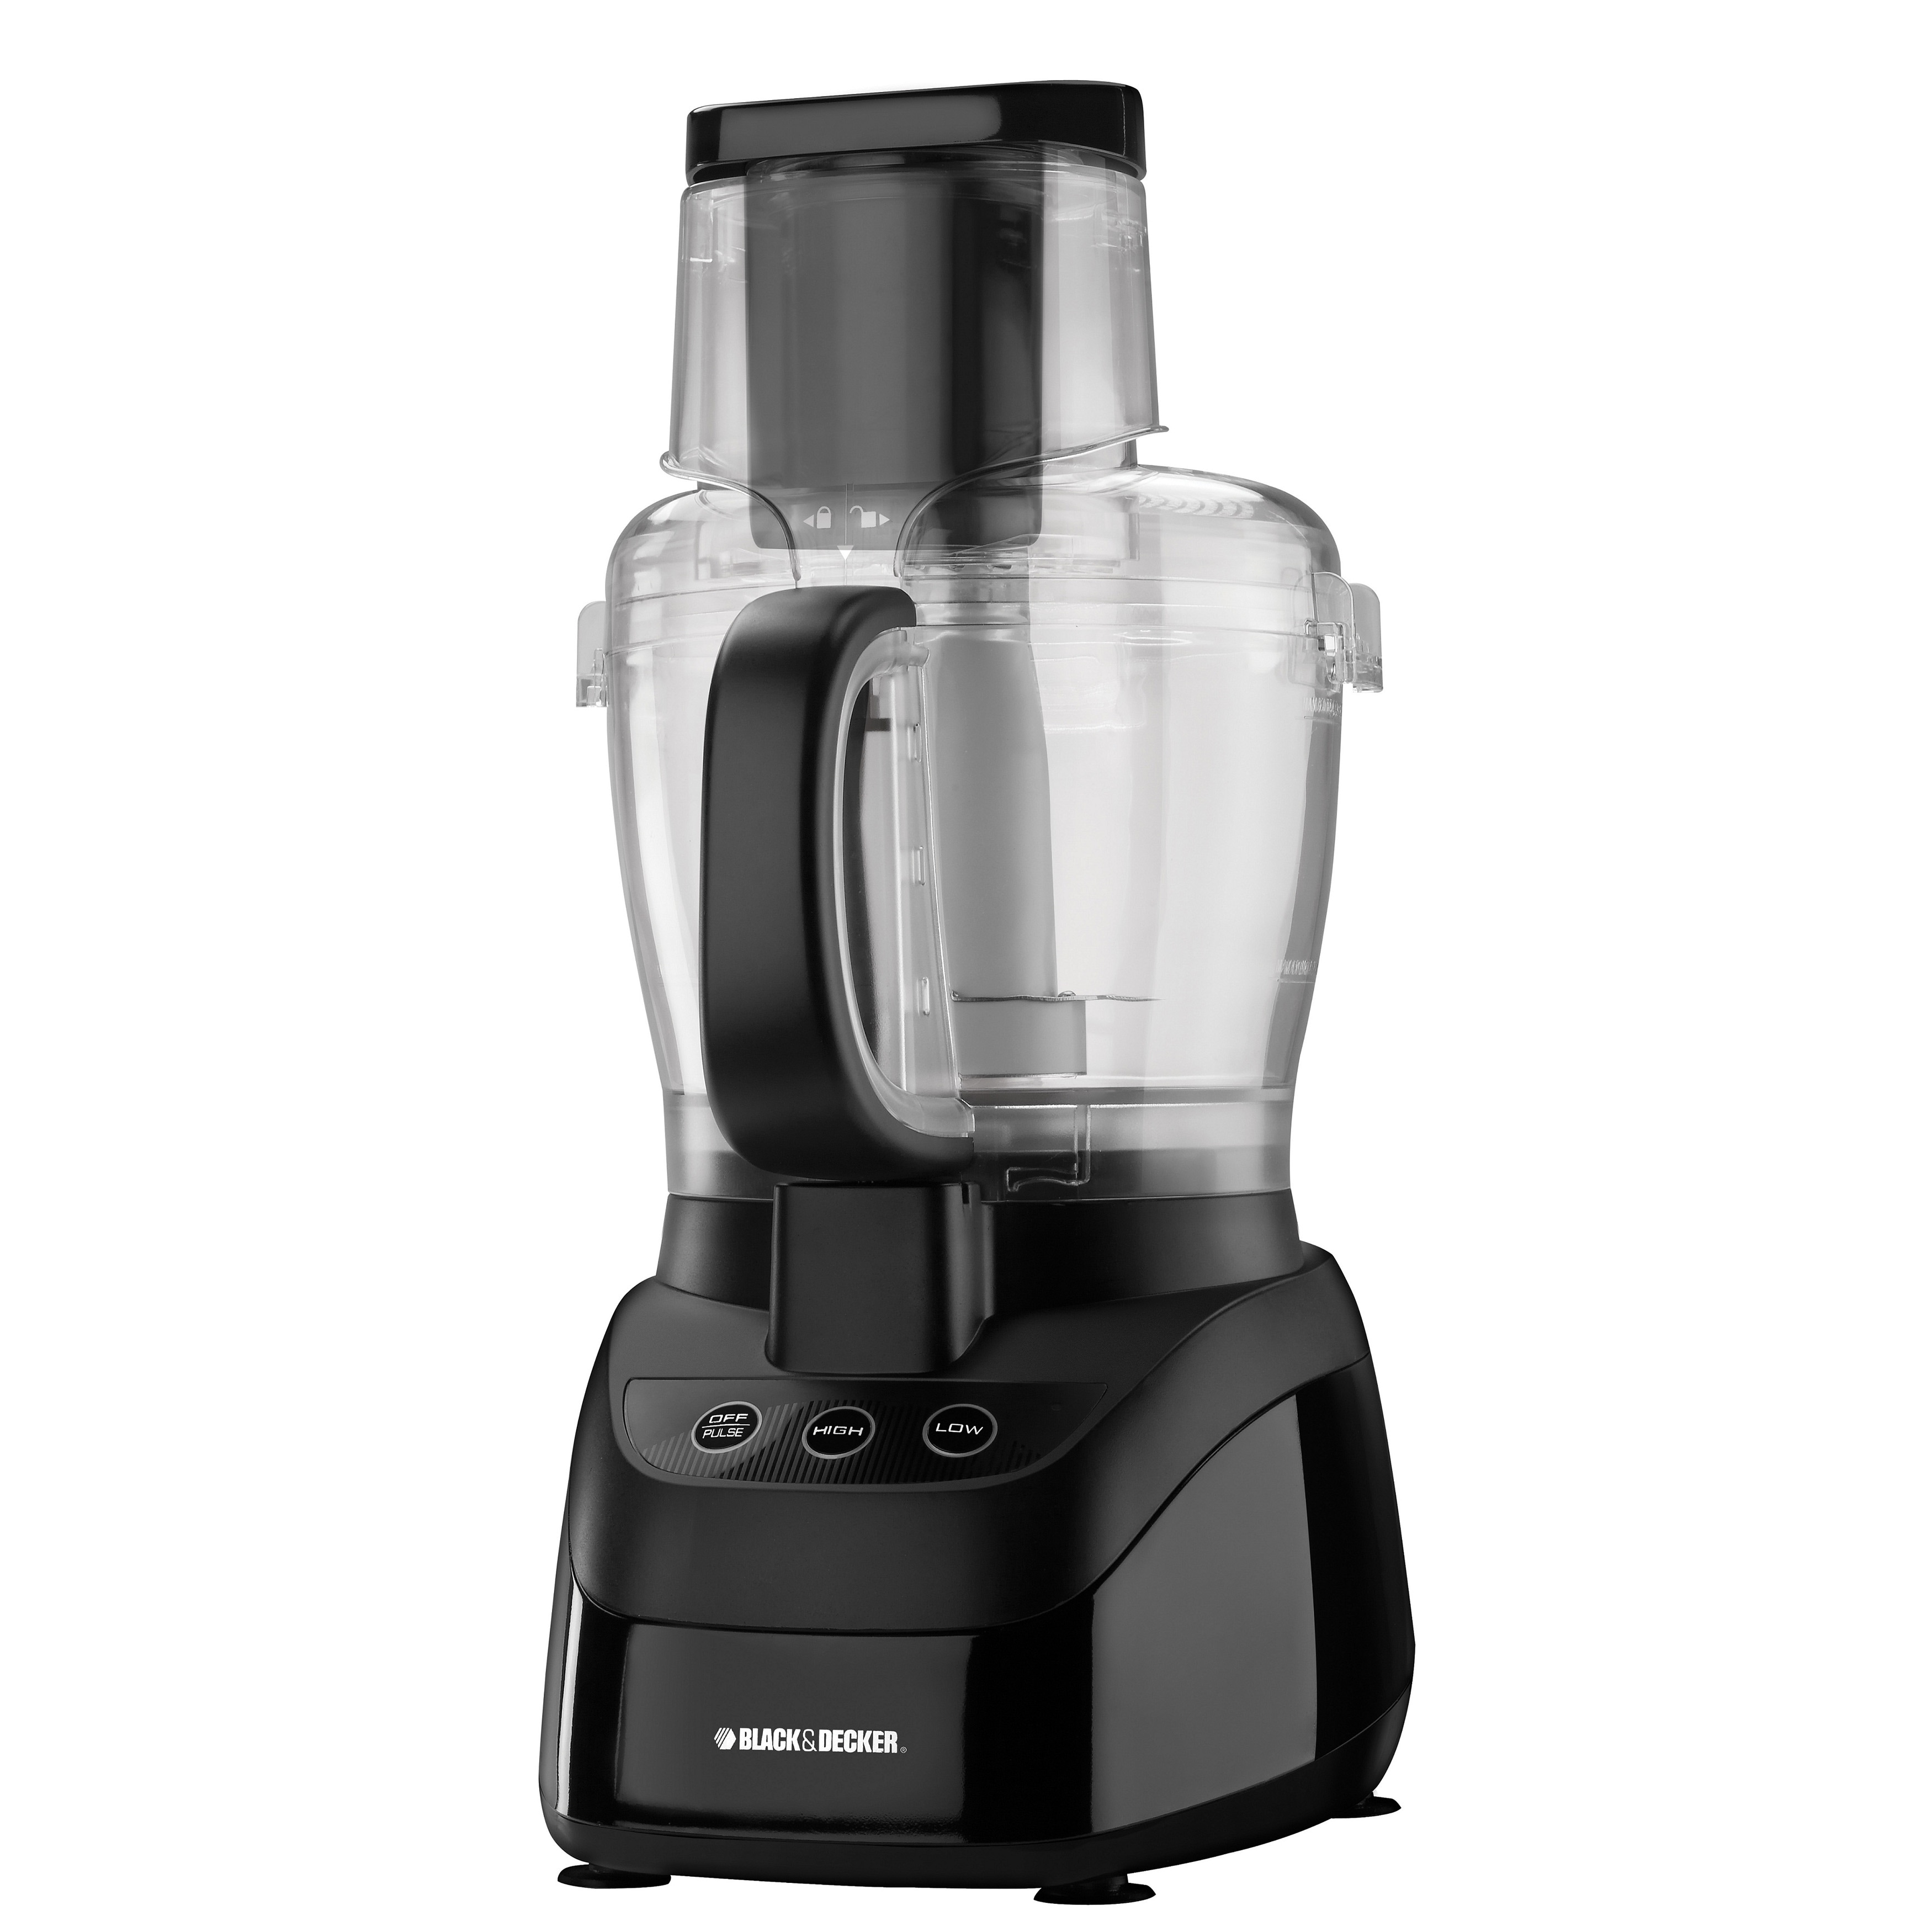 Black & Decker 10-Cup Wide-Mouth Food Processor, Size Ful...